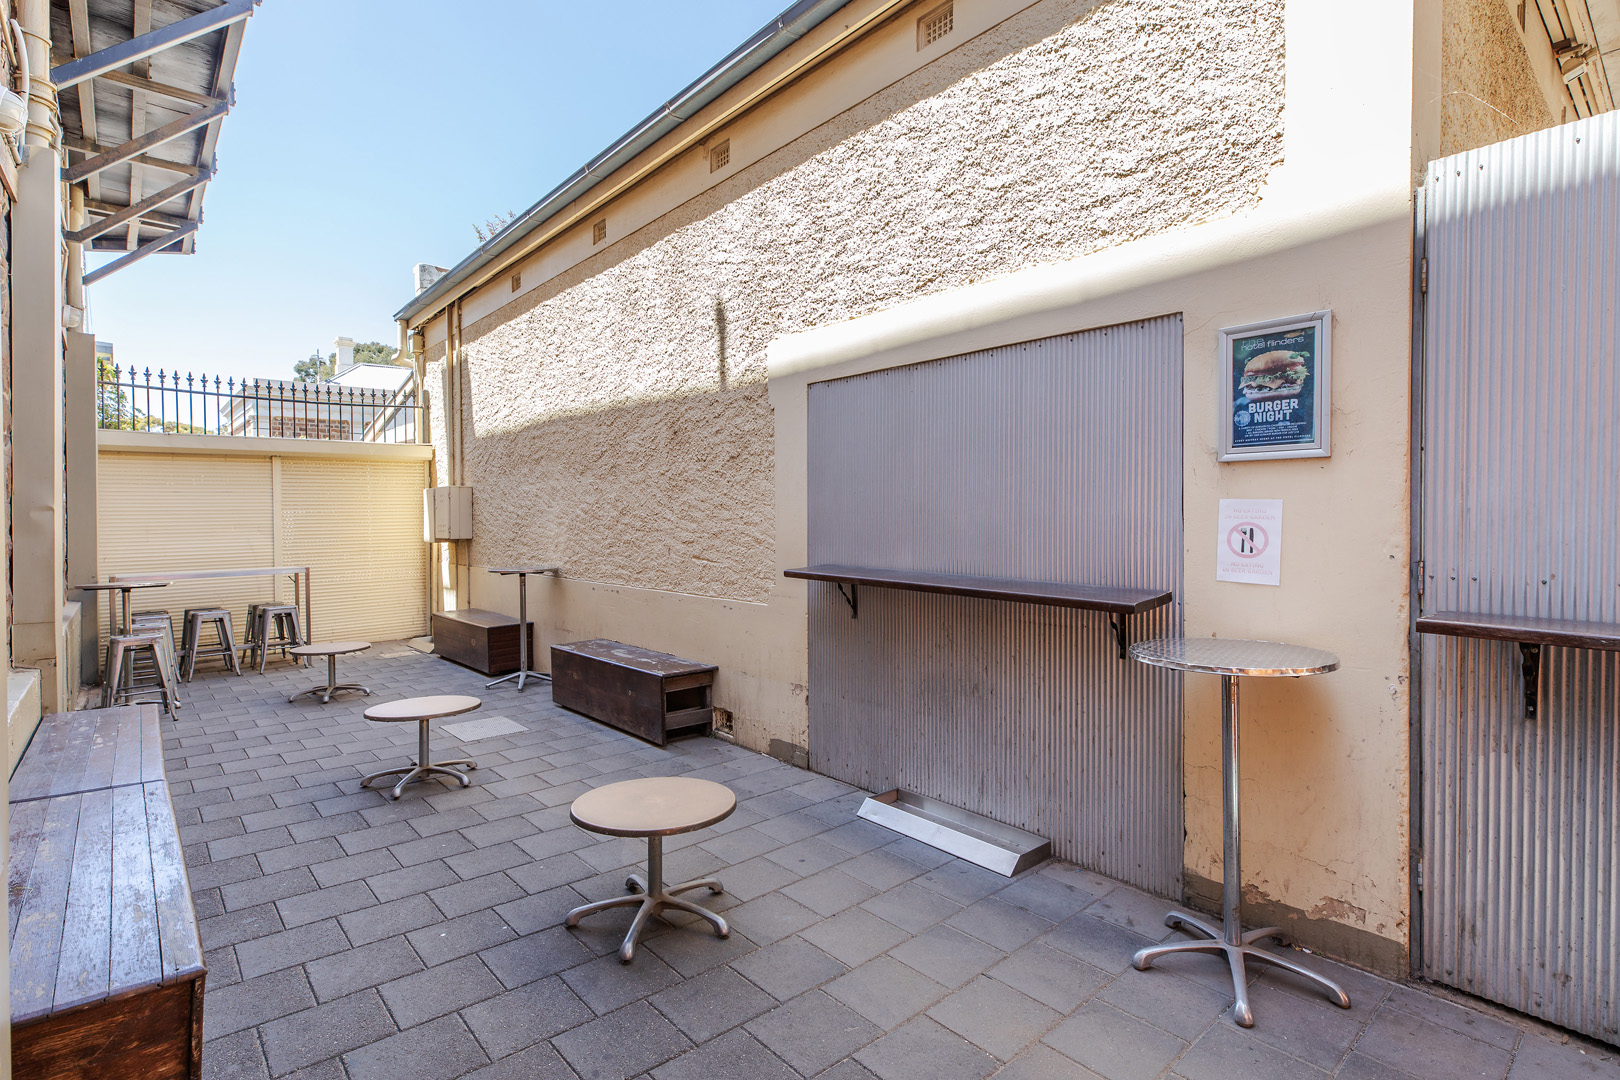 the-flinders-hotel-motel-smoking-area-beer-garden-seating-outdoors